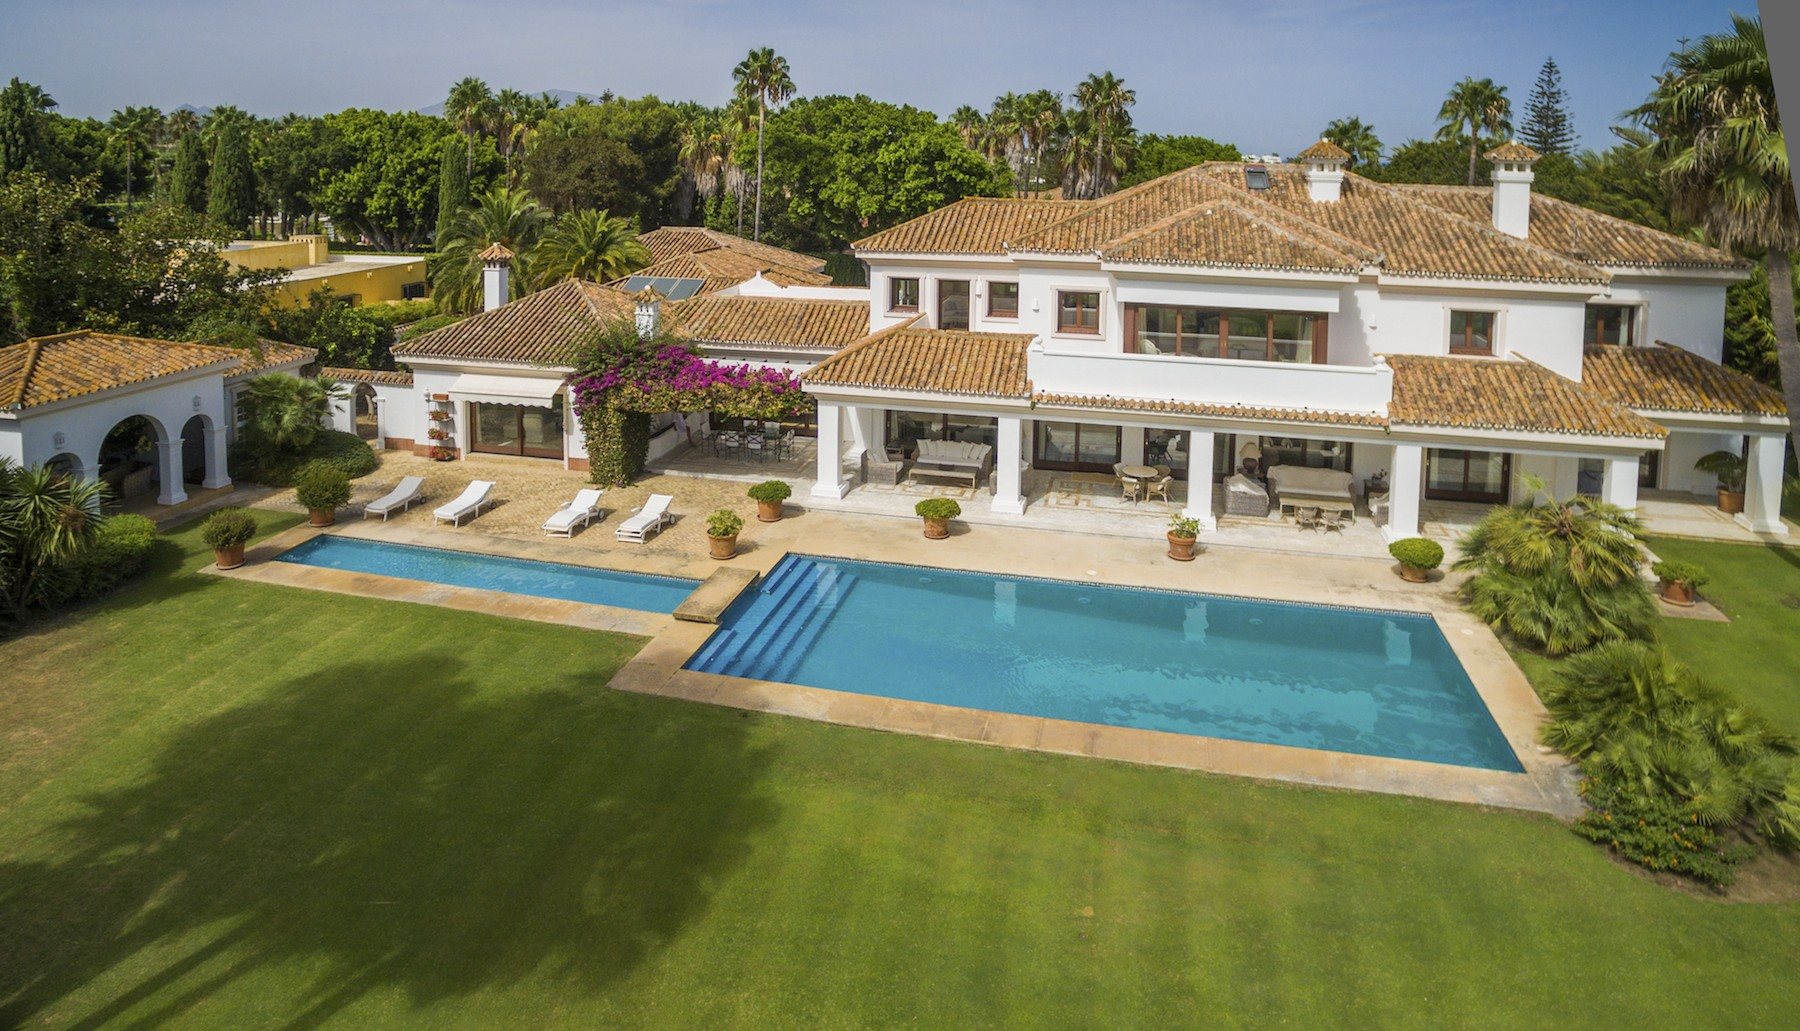 独户住宅 为 销售 在 Superb and elegant villa front line golf Sotogrande 11310 Sotogrande (Sotogrande Costa), Cadiz (Spain) 西班牙其他地方, 西班牙的其他地区, 11310 西班牙